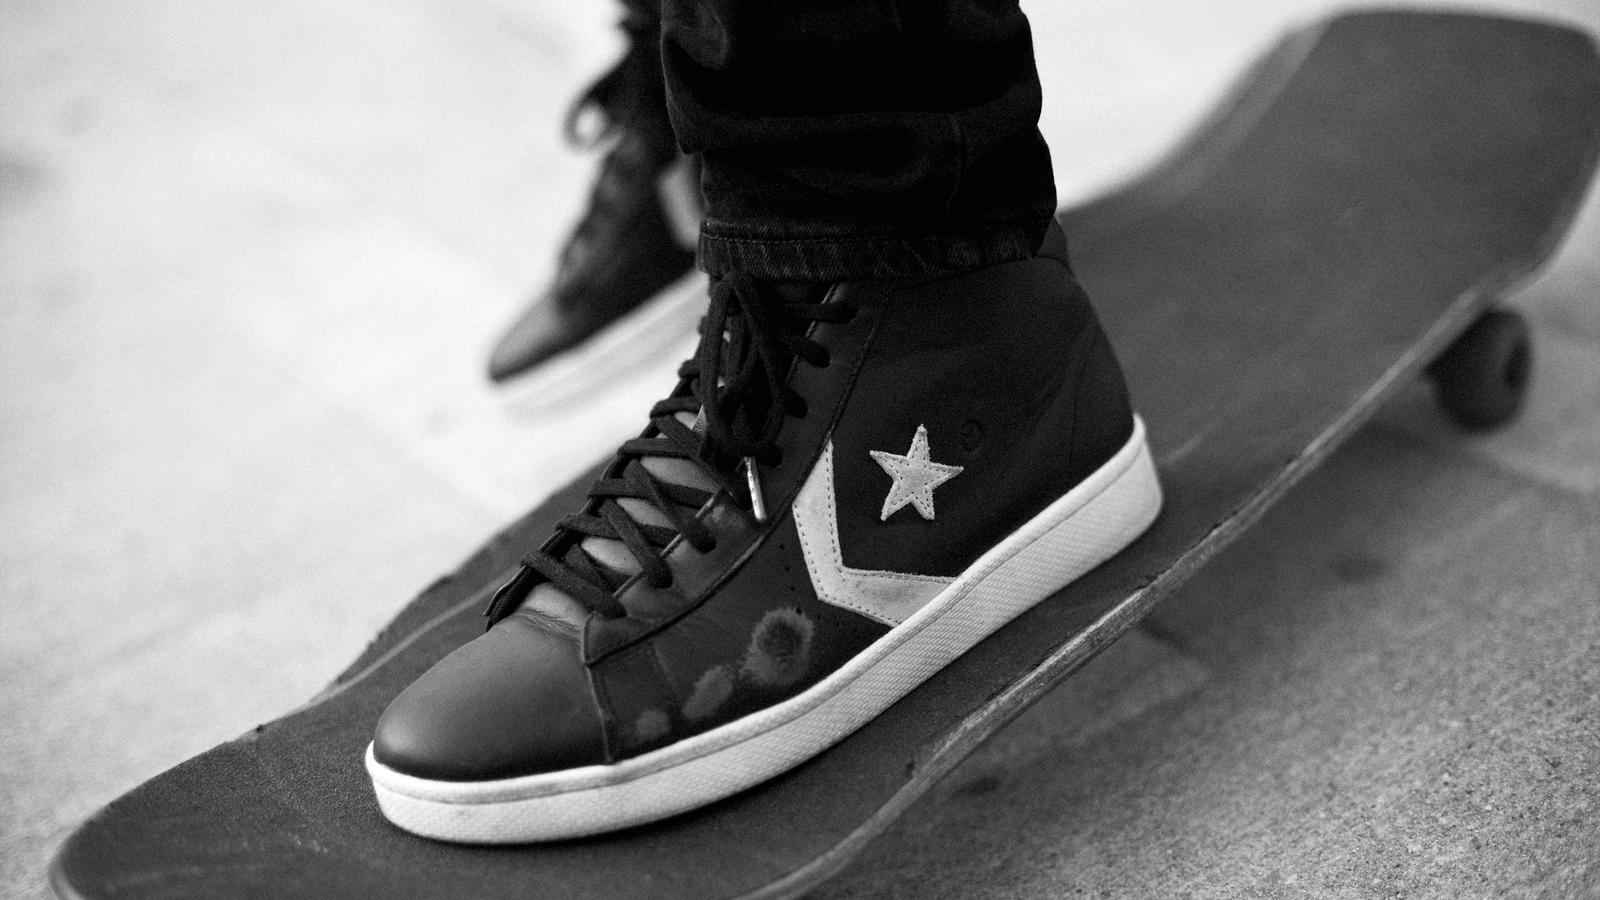 dbf0122af192 Converse CONS Debuts Limited Edition Footwear Collection With Trash ...